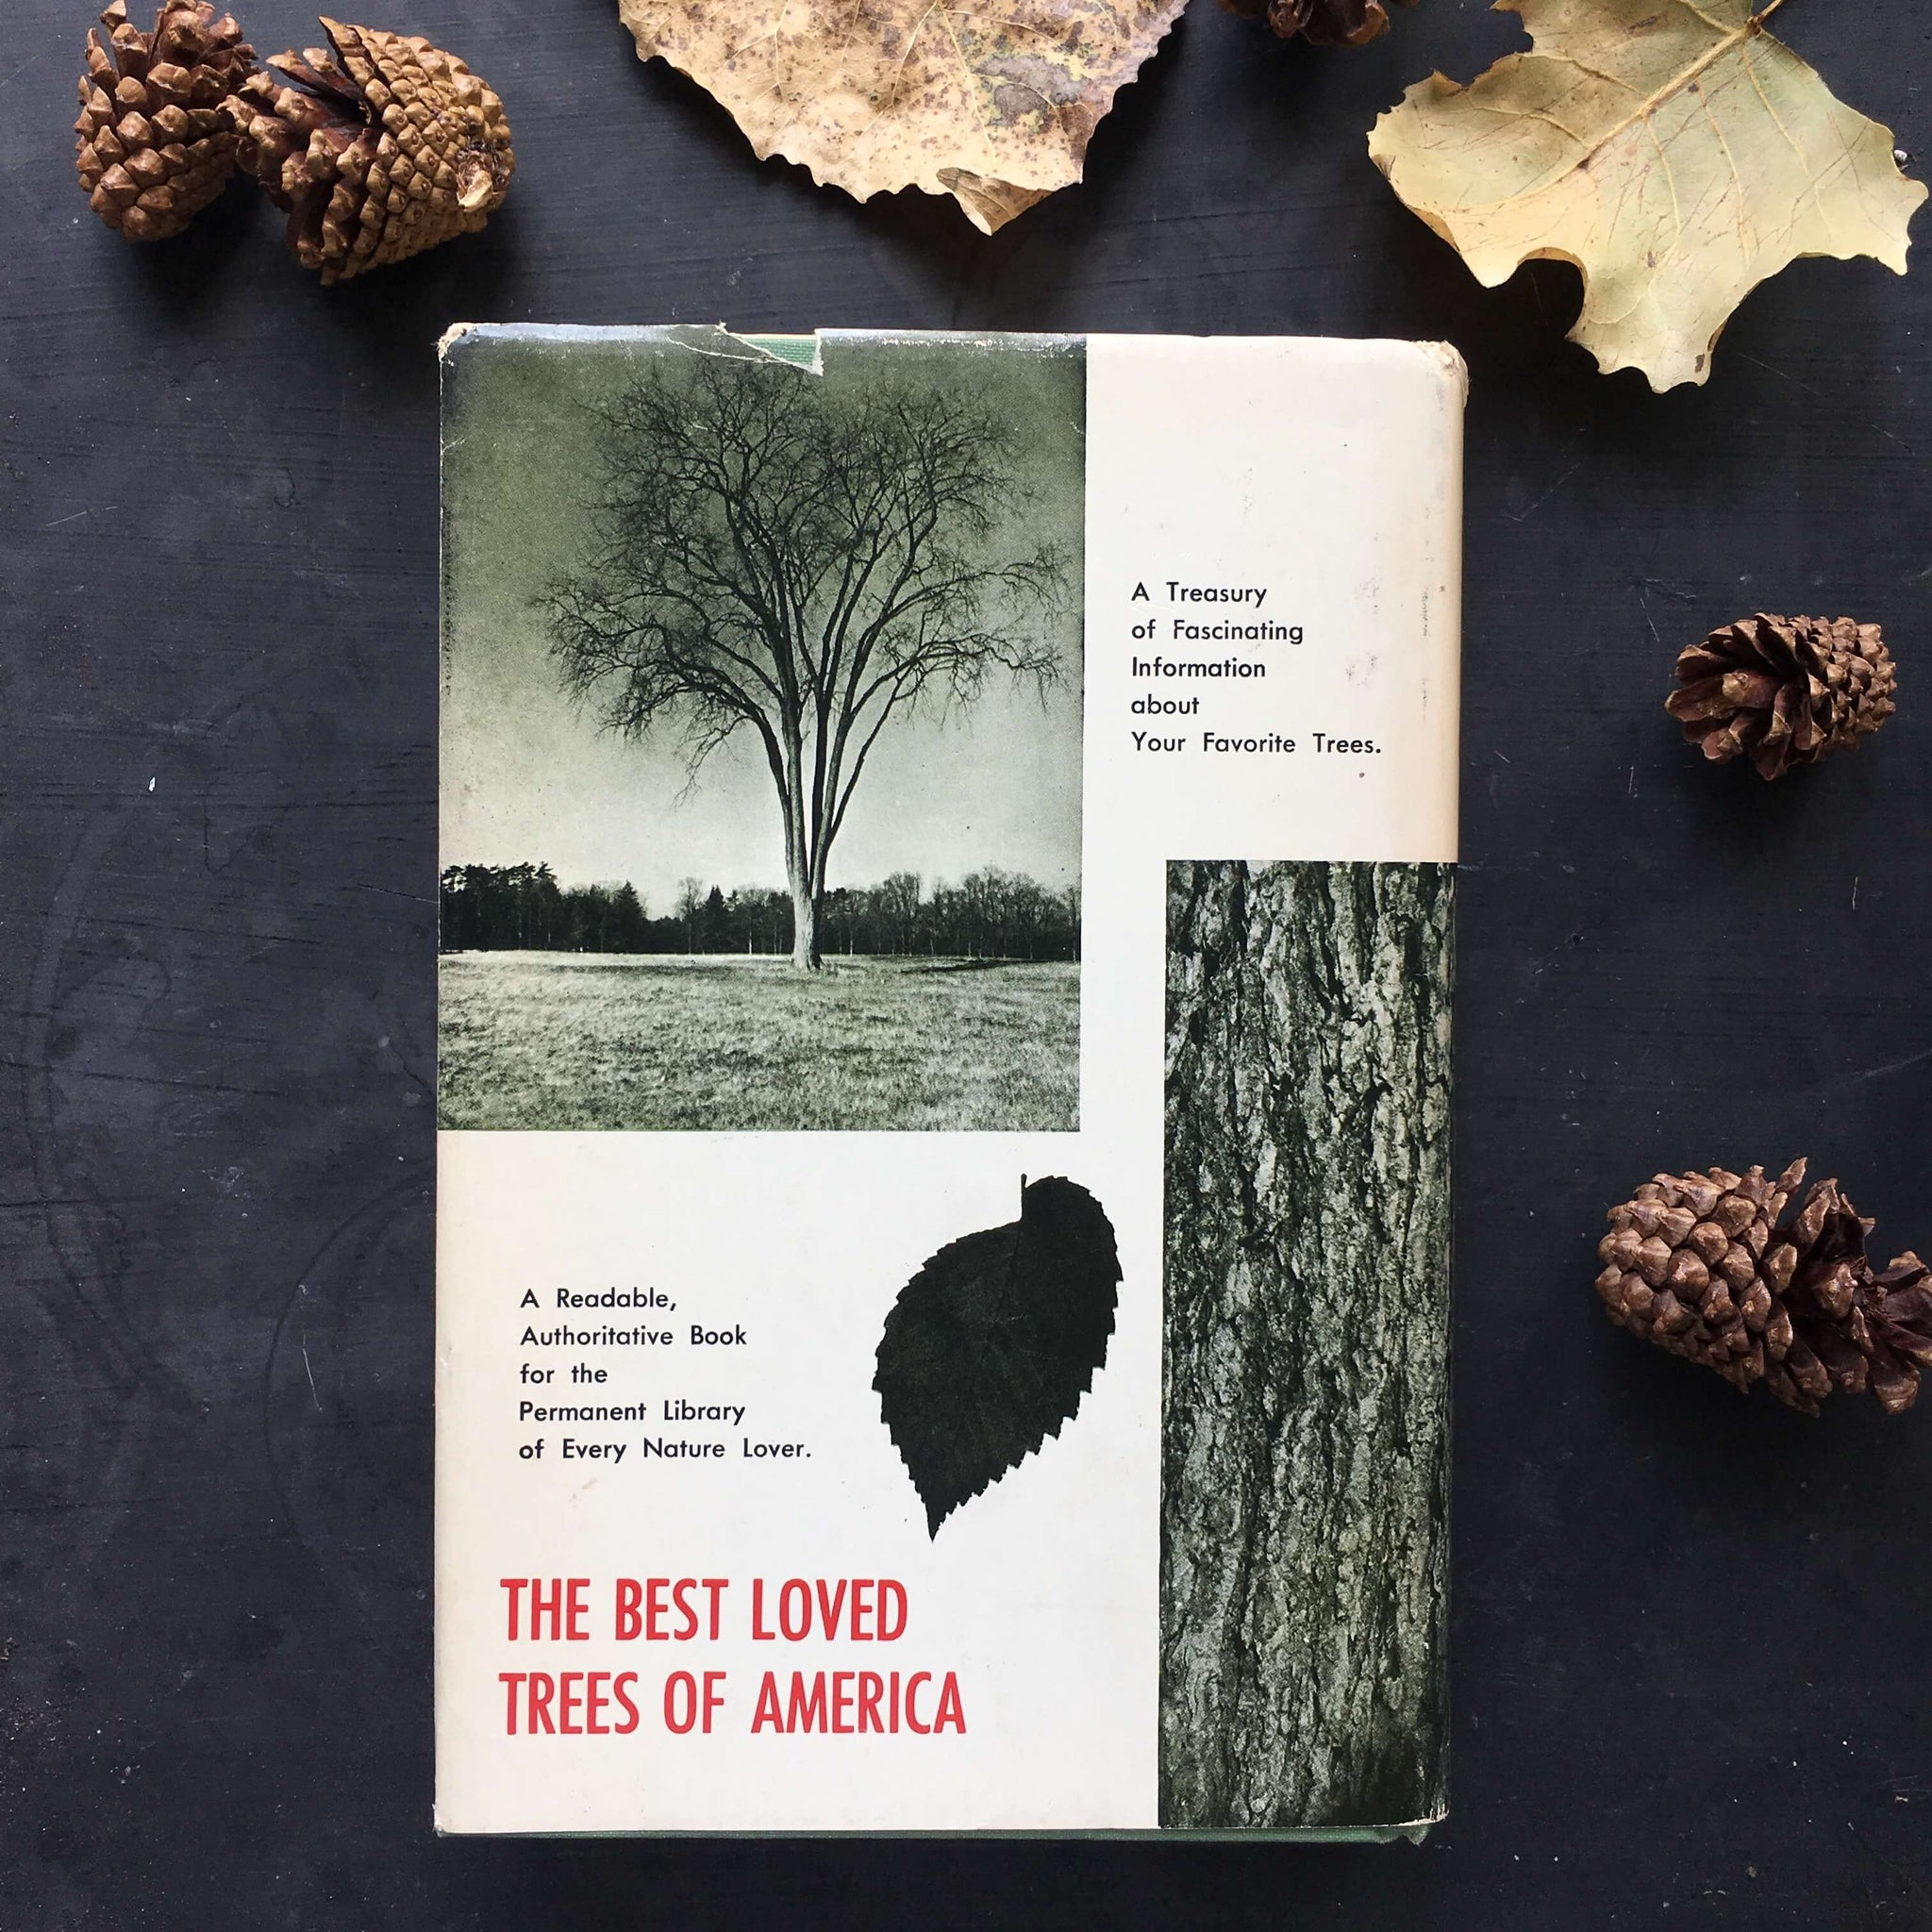 The Best Loved Trees of America - Robert S. Lemmon - 1973 American Garden Guild Book Club Edition